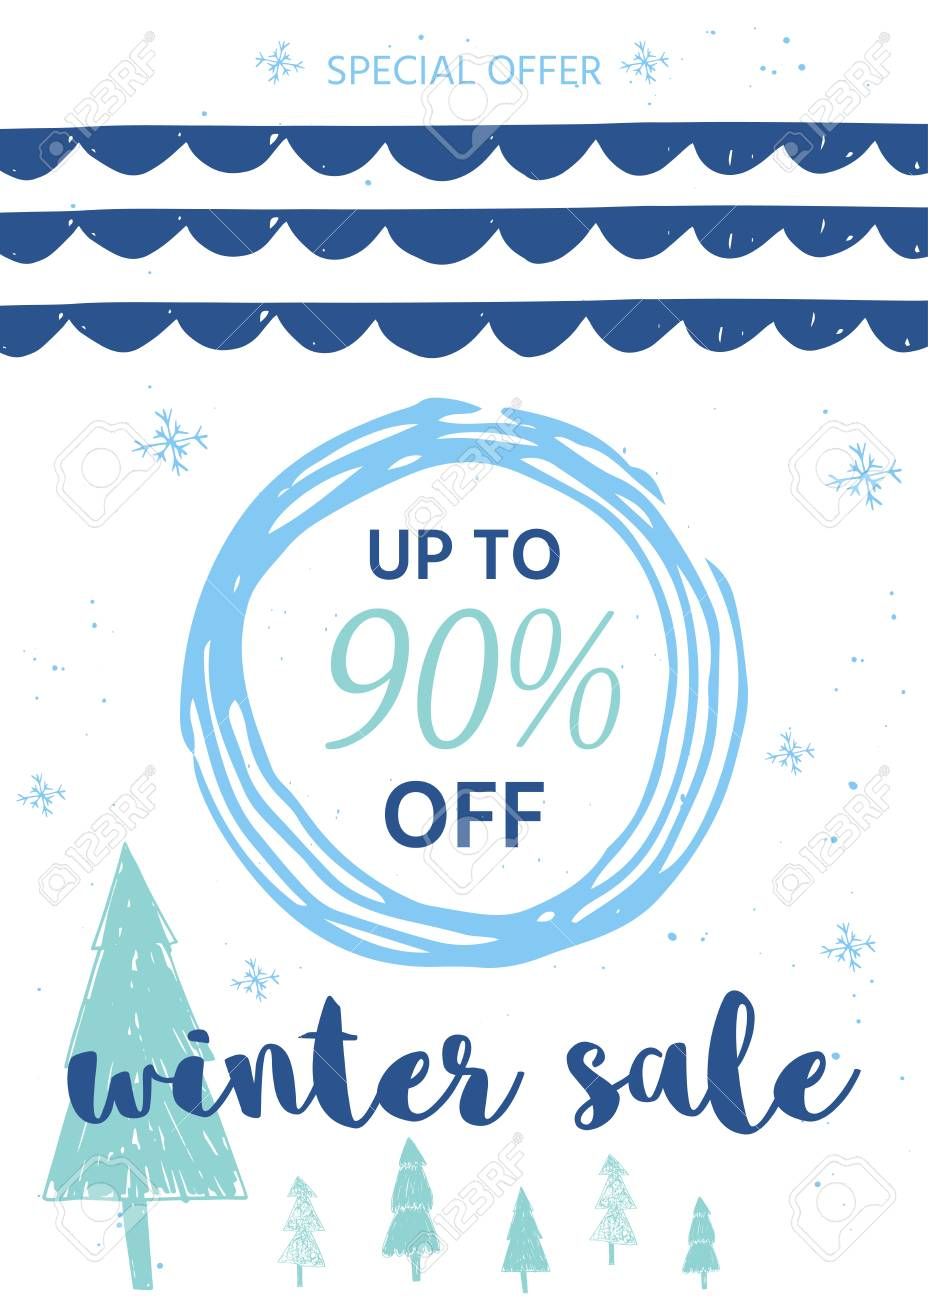 Winter Sale Banners Php Mysql Banners